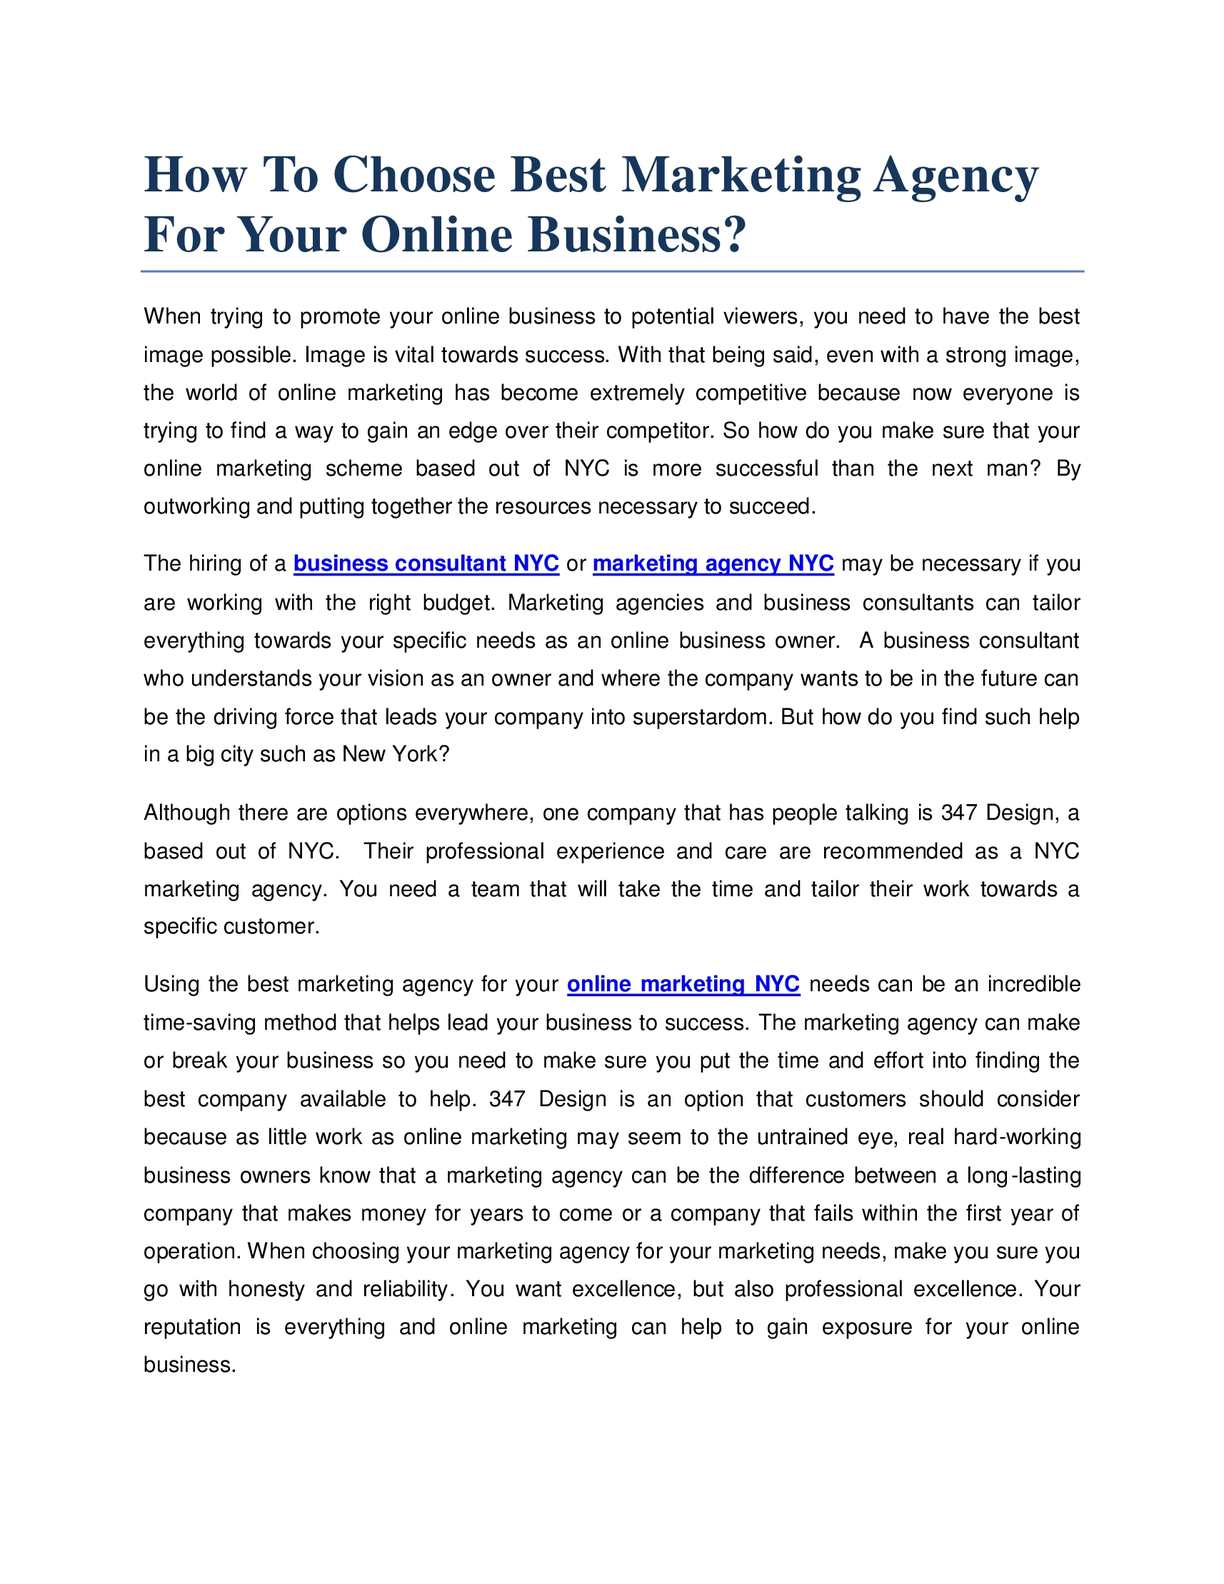 Calaméo - How To Choose Best Marketing Agency For Your Online Business